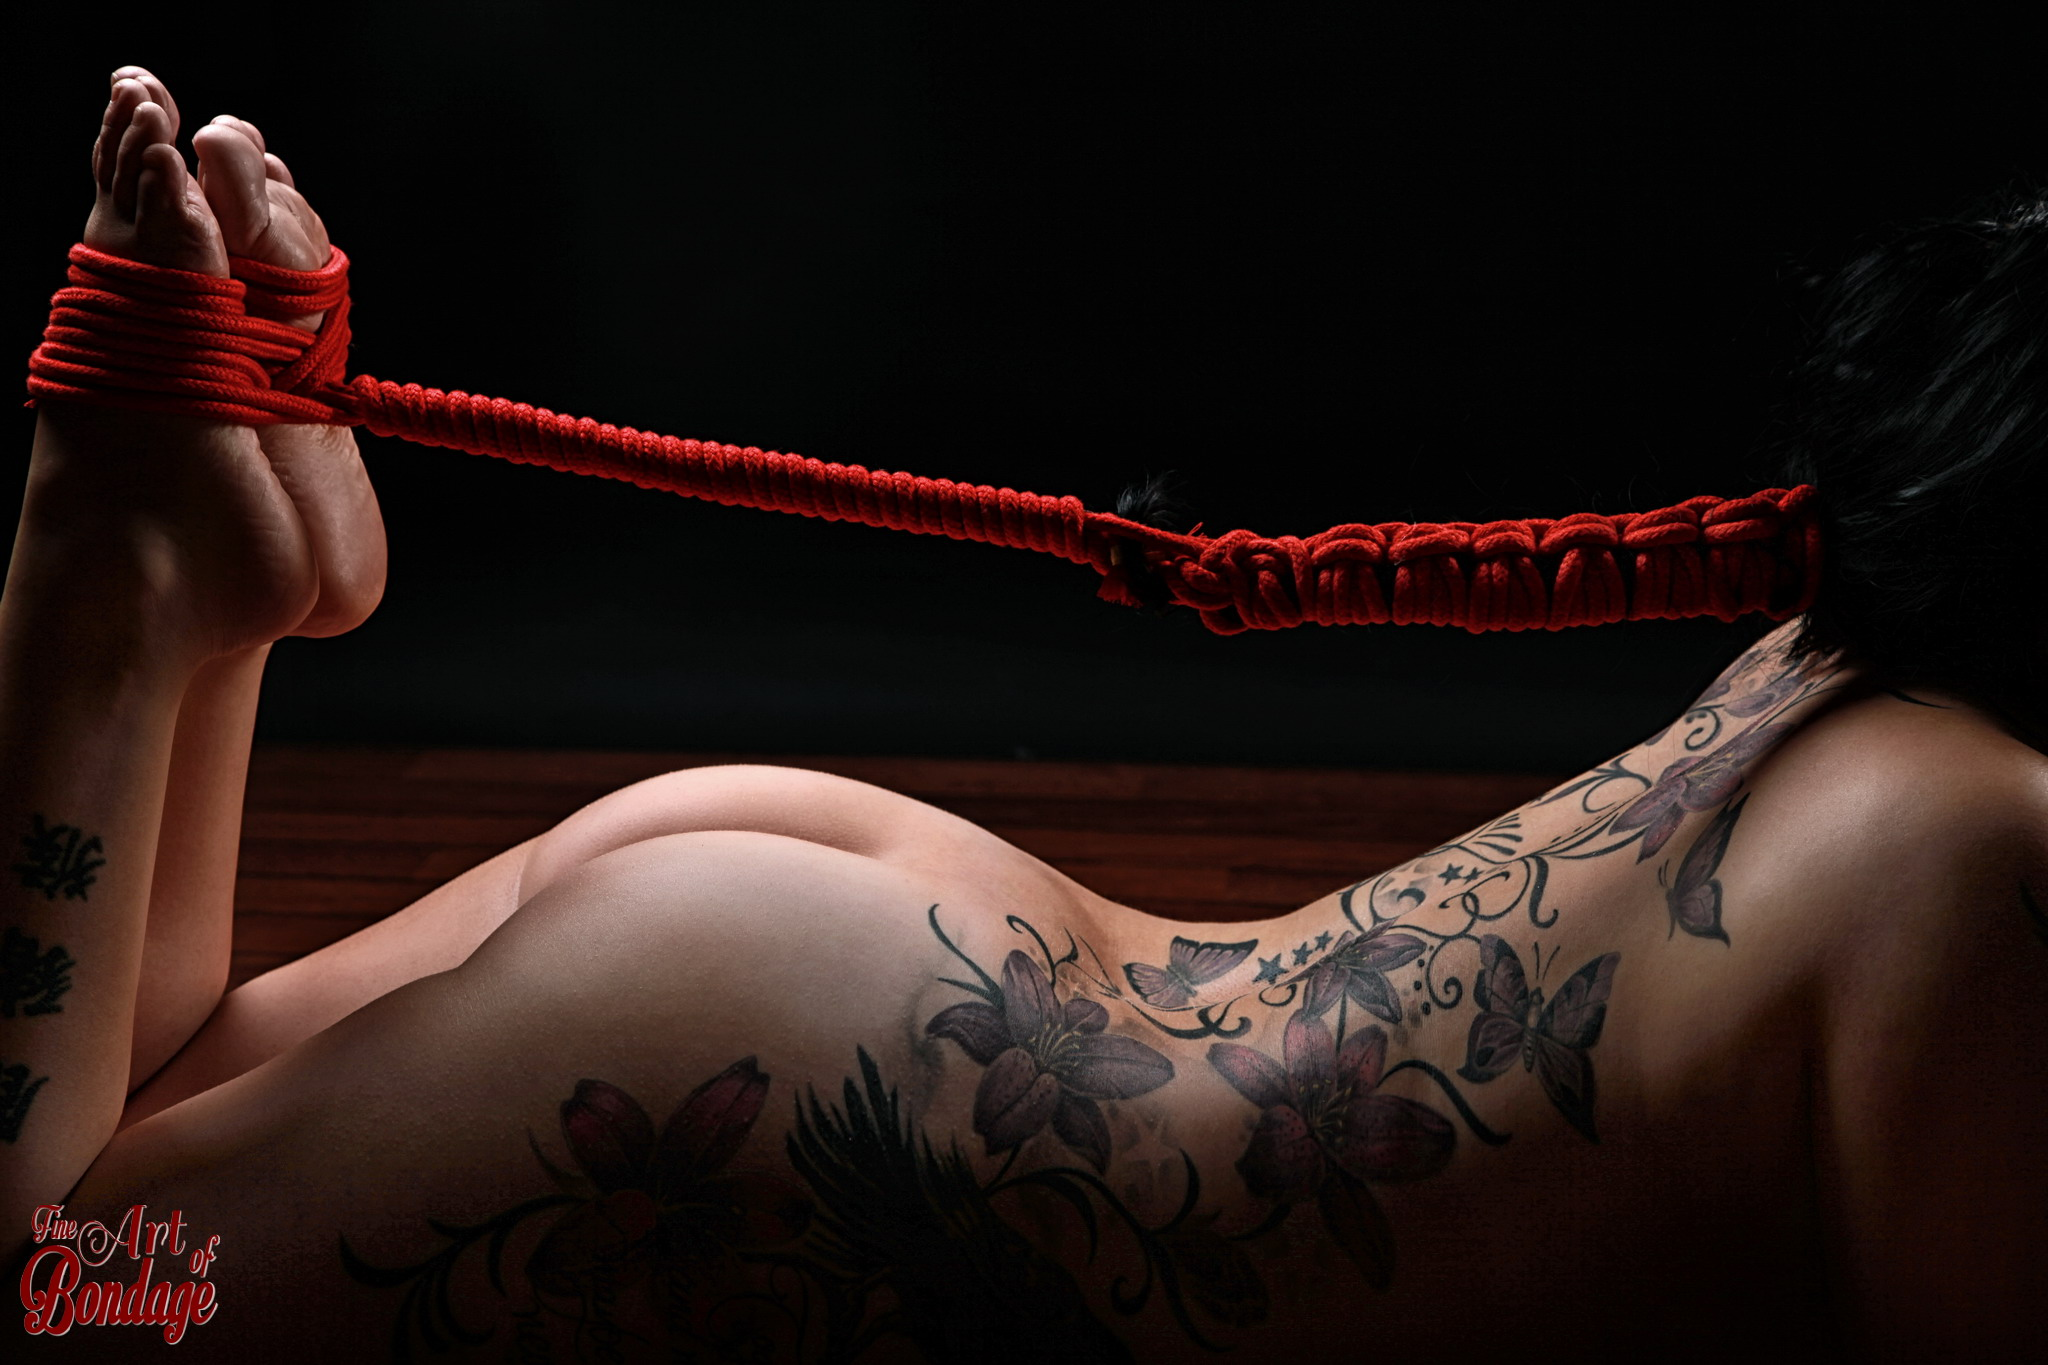 Hair Bondage - Hair to feet, red rope on a nude, inked girl, Tattoo and rope - artwork/Ropeart - Fine Art of Bondage